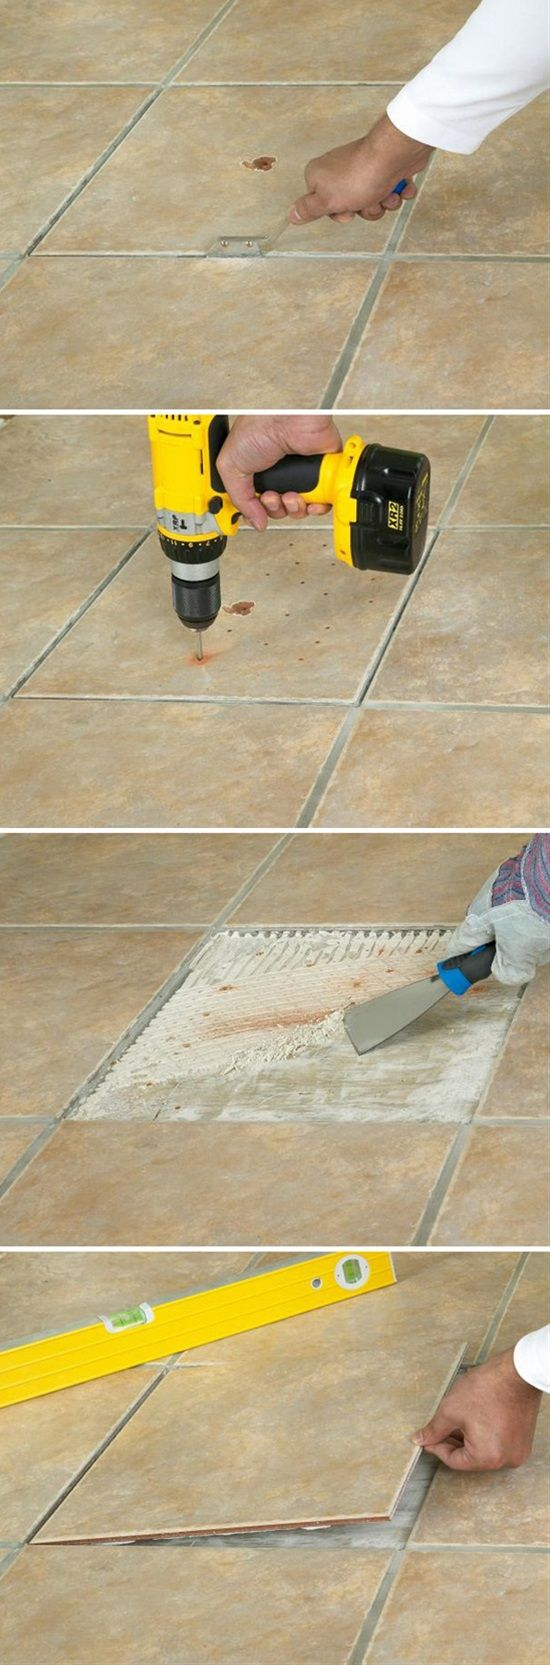 15 useful home repair tips hacks generators internet and doors how to replace a broken floor tile dailygadgetfo Gallery